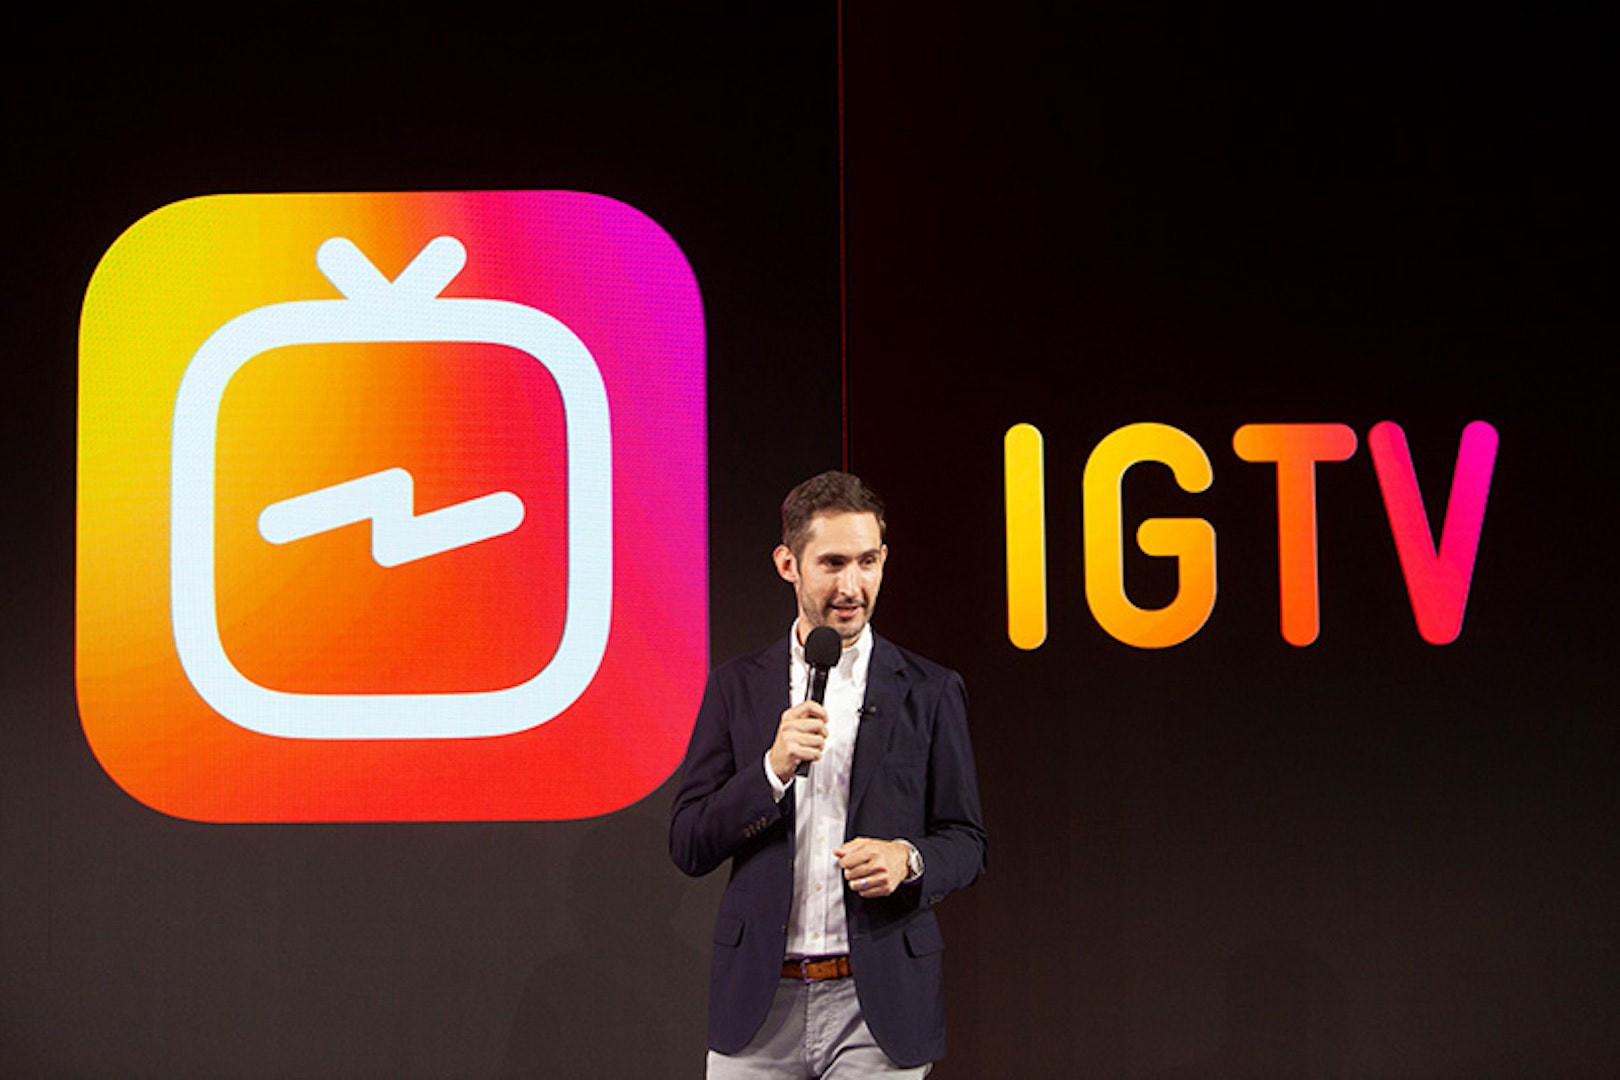 IGTV, la nuova piattaforma video di Instagram